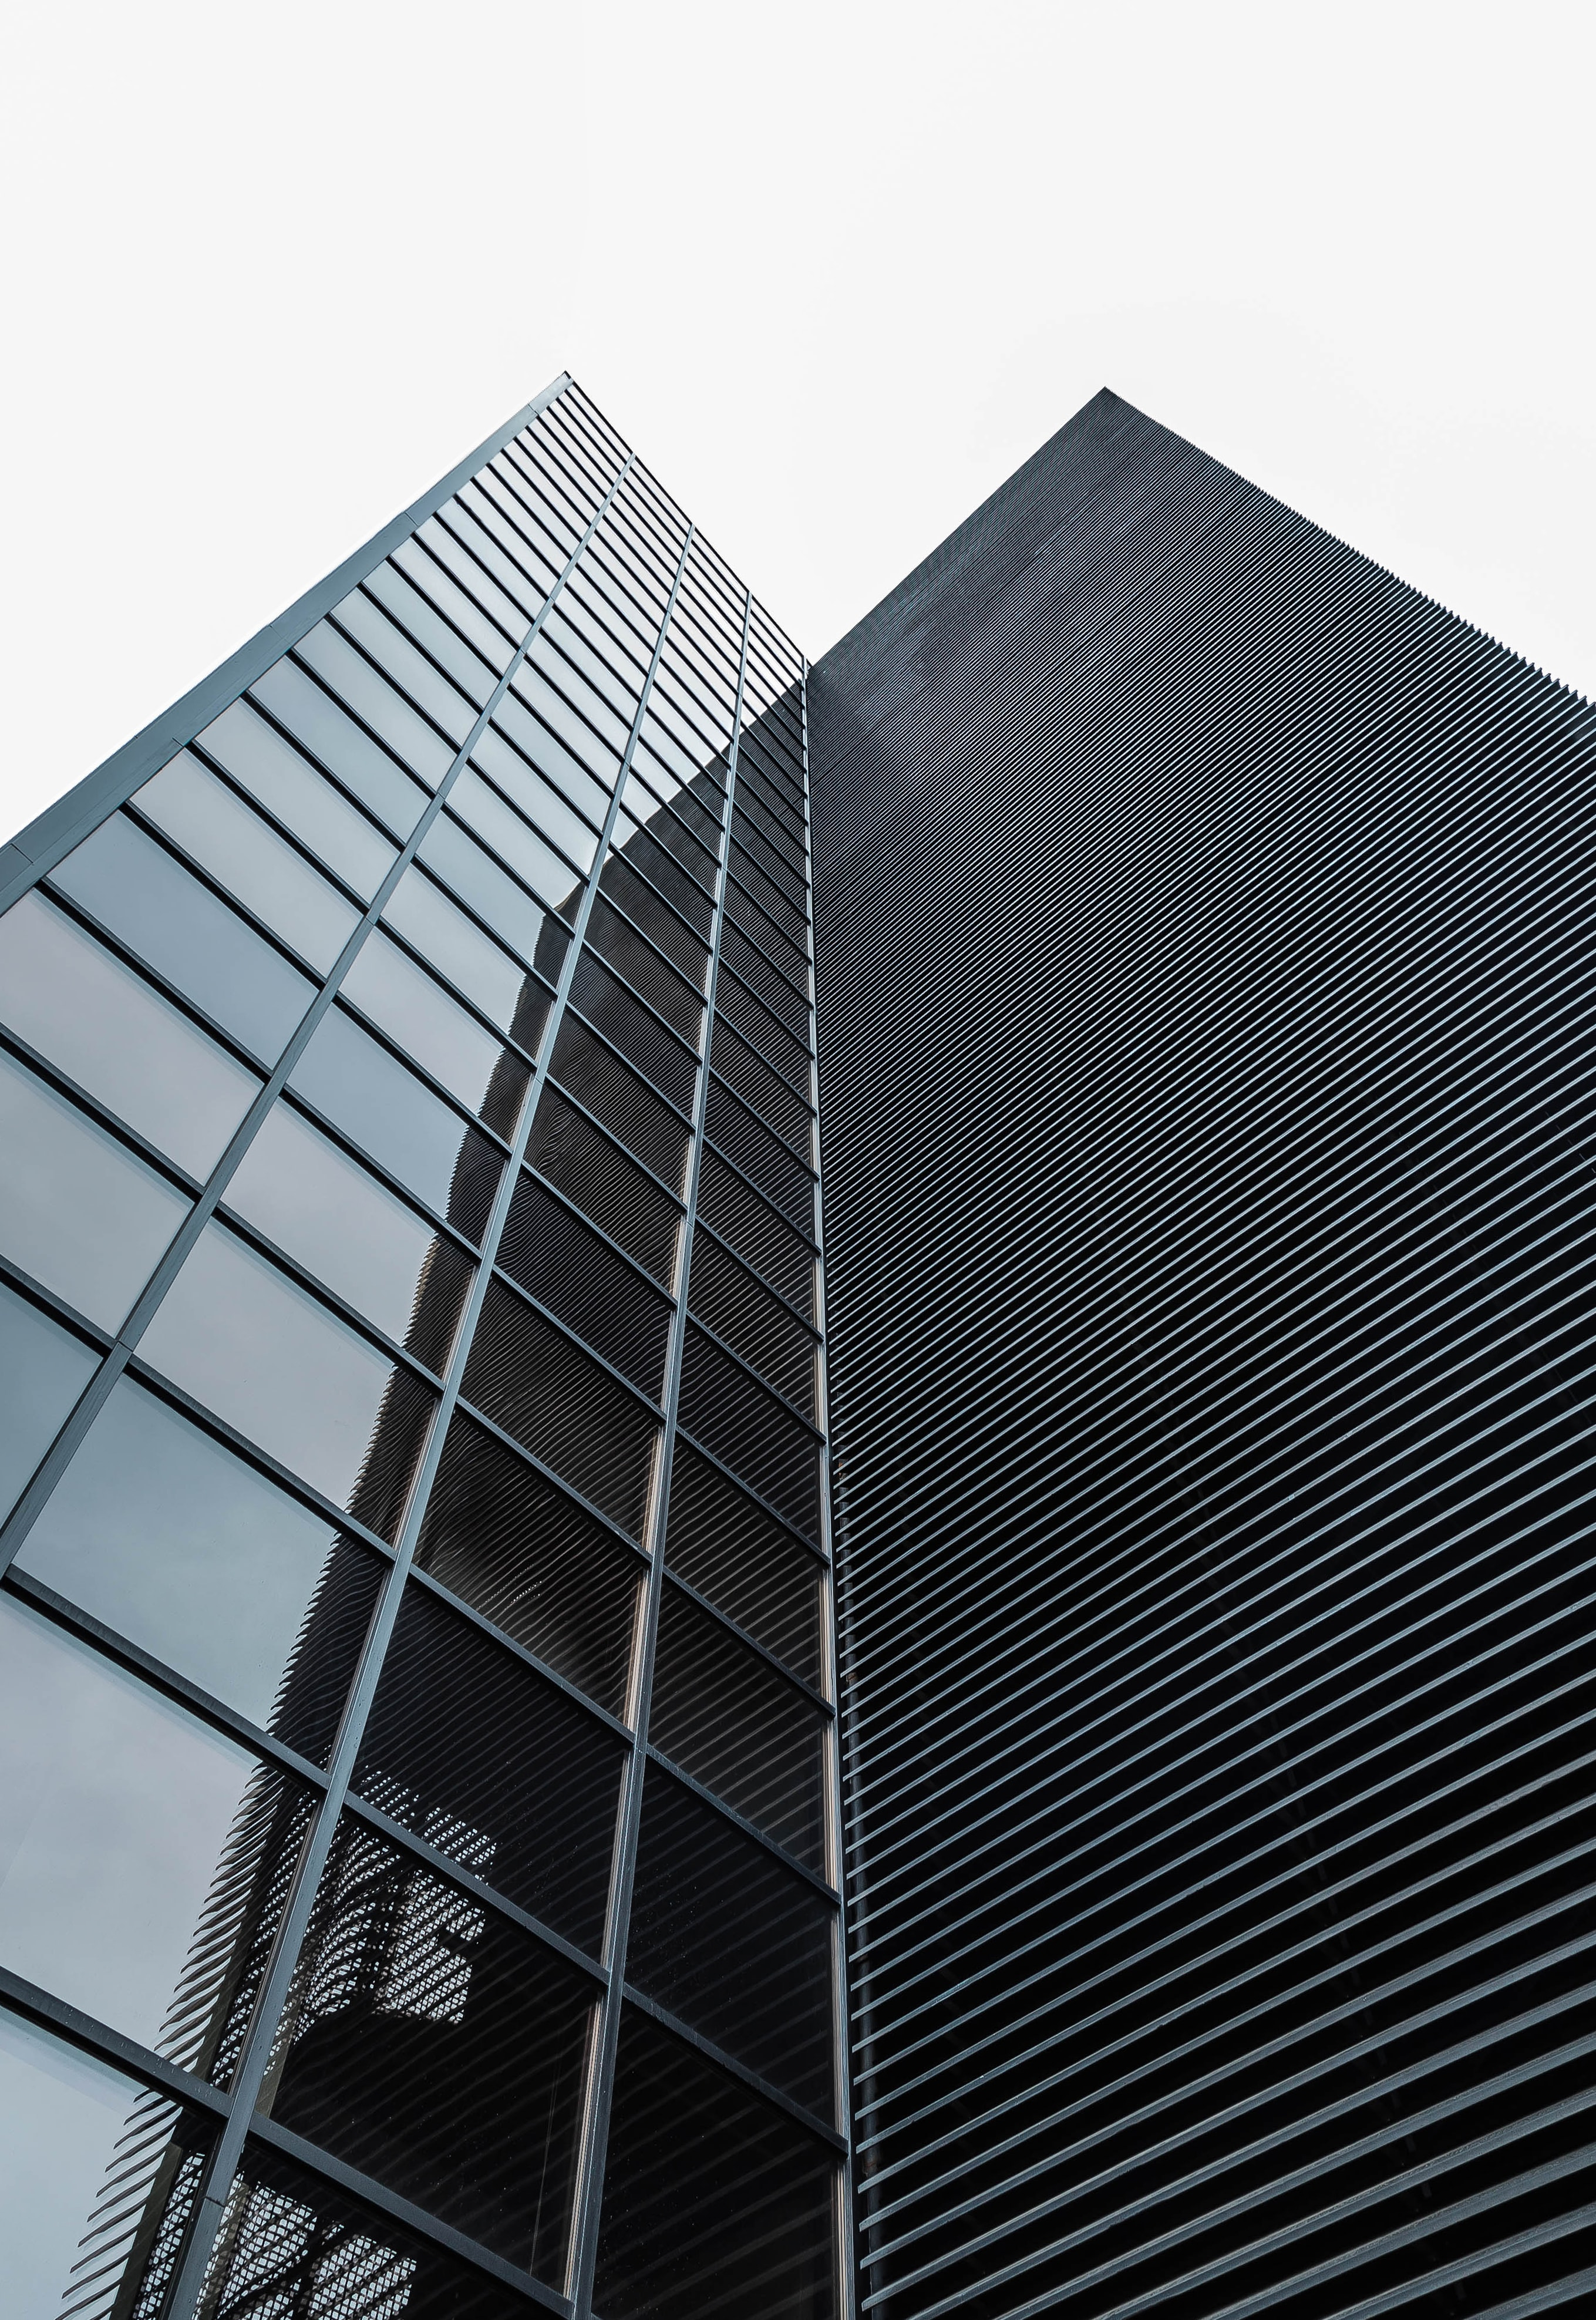 A corner of a modern office building facade with square glass windows